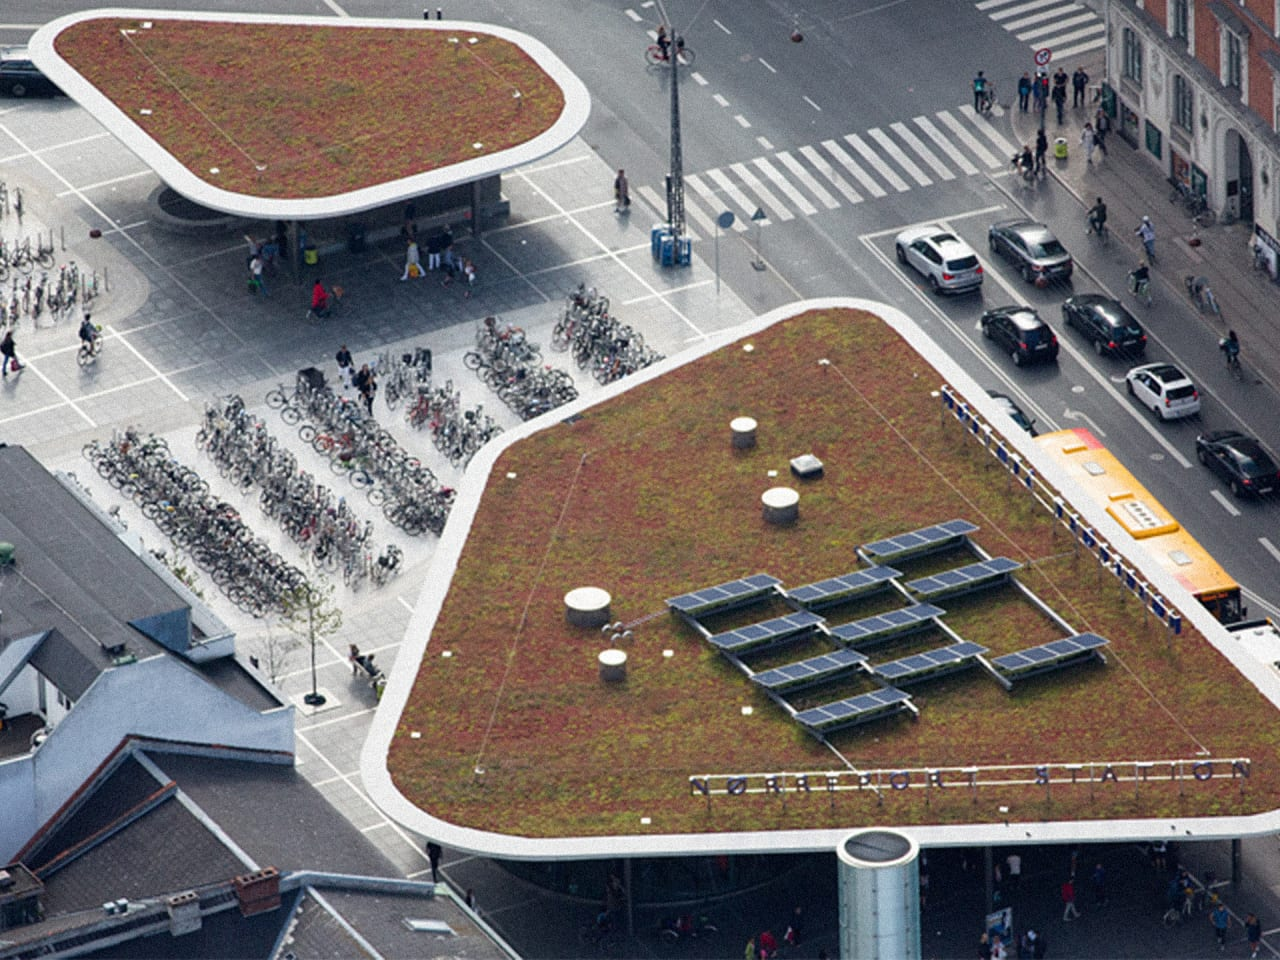 These Aerial Photos Explain Why Europe Has Such A Lower Carbon Footprint Than The U.S.